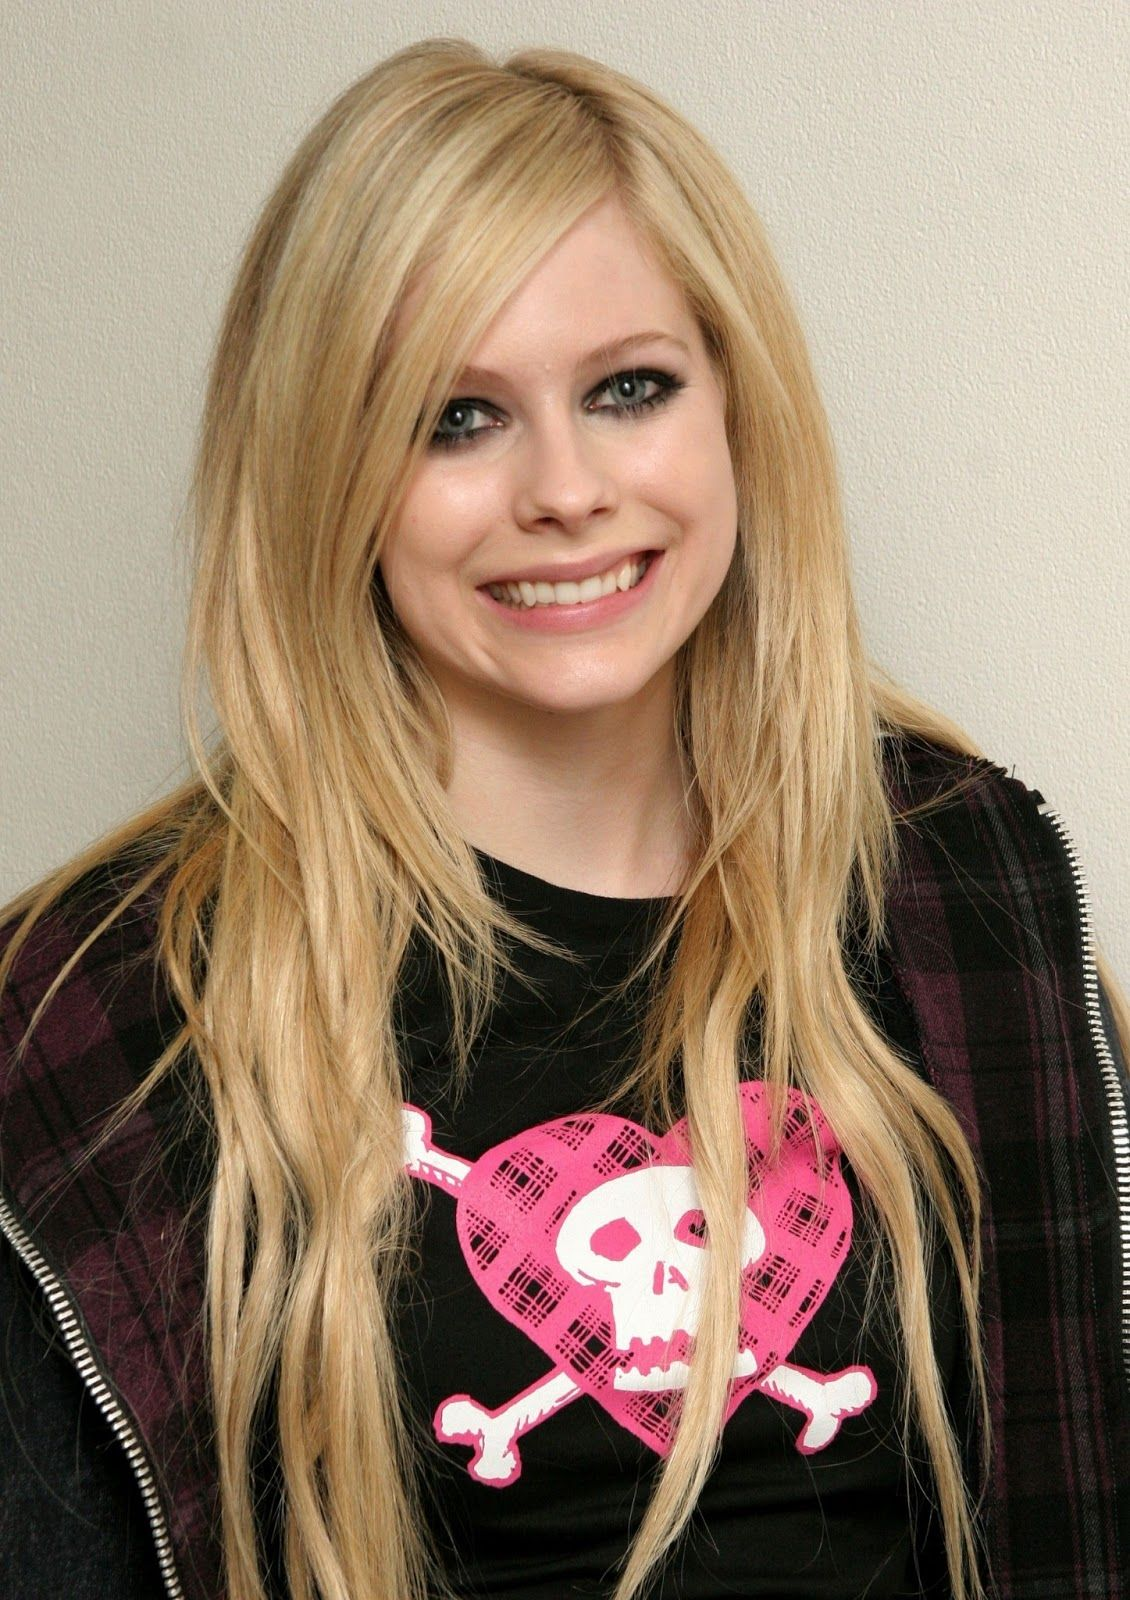 Avril Lavigne Hairstyles Women Hairstyles Women Hair Styles Collection Long Hair Styles Hair Styles Avril Lavigne